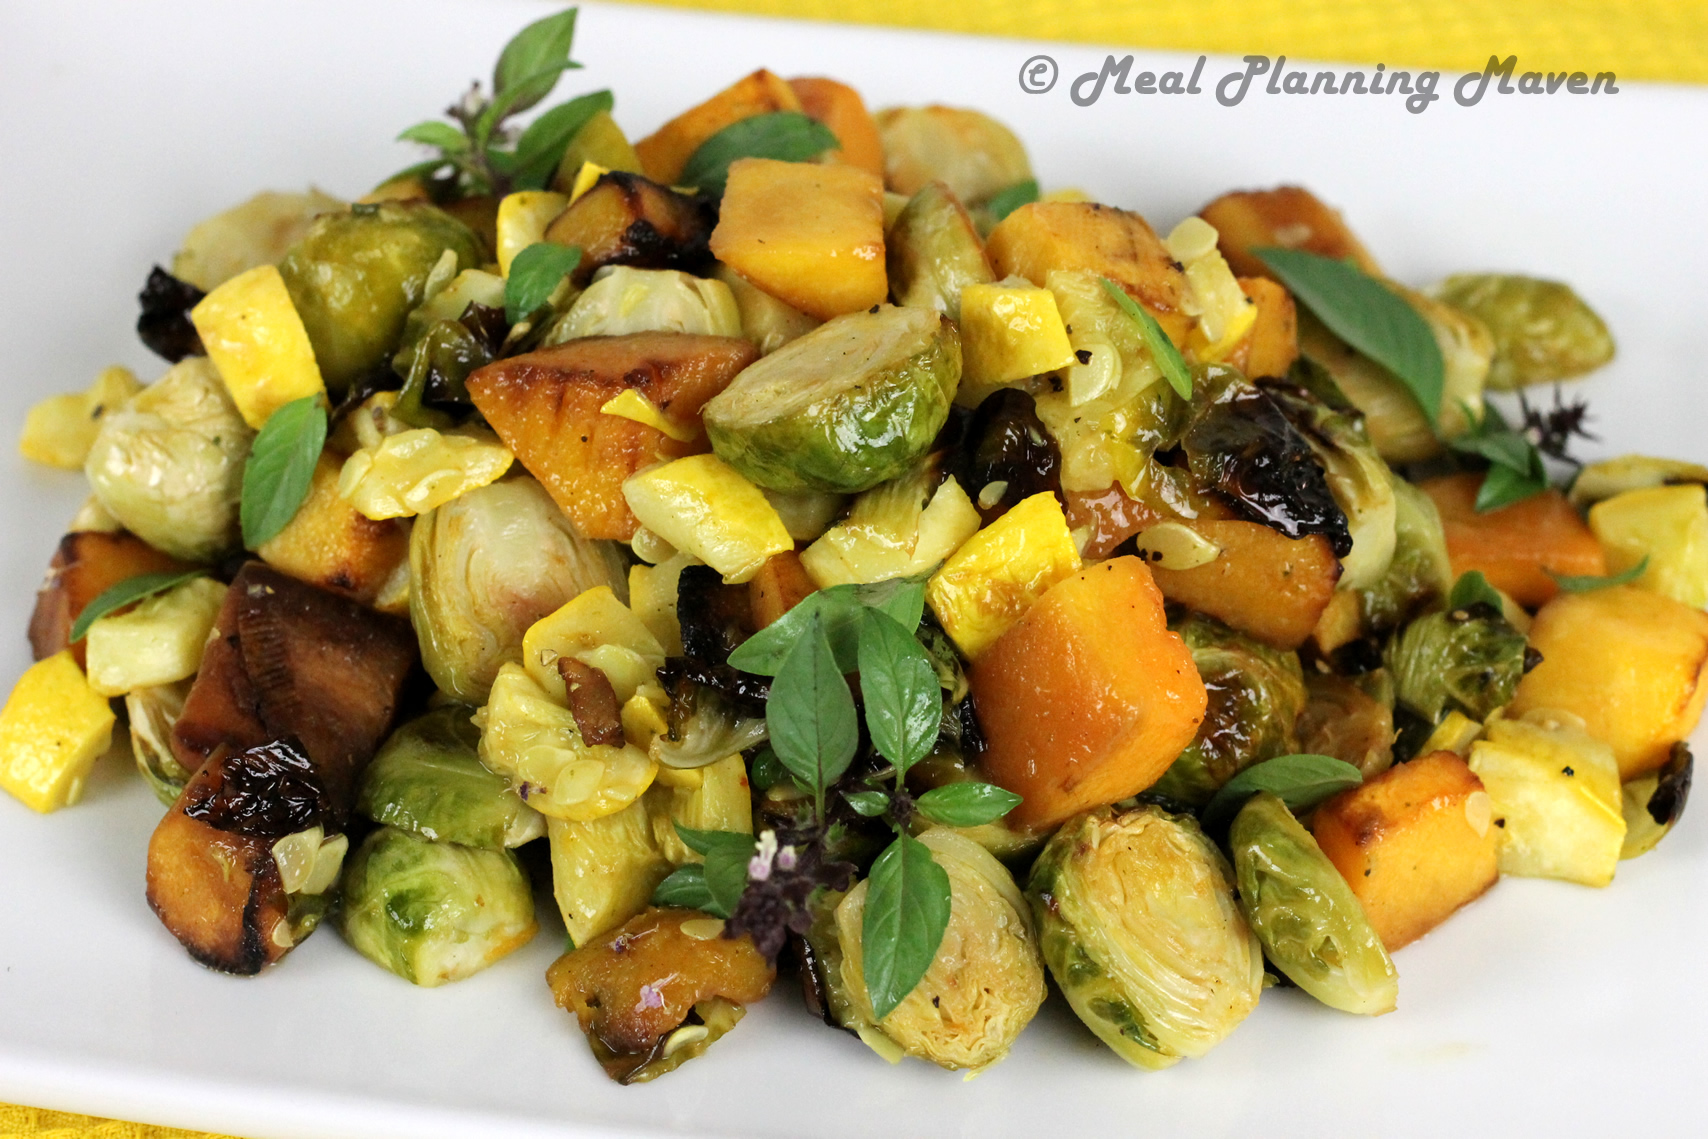 Roasted Butternuts 'n Brussels